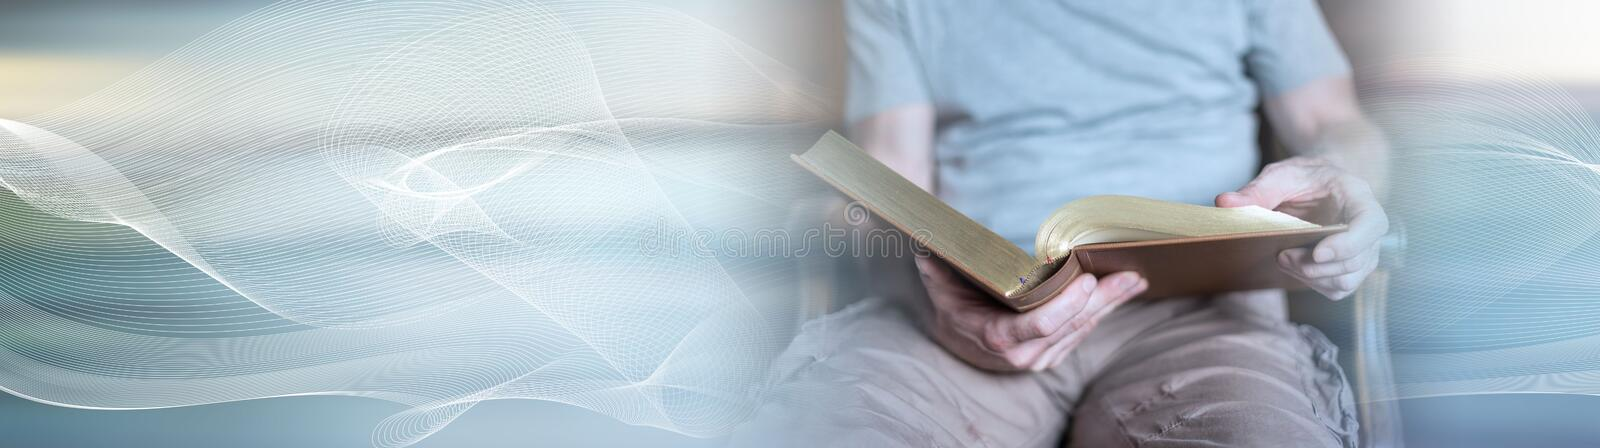 Man reading the bible. panoramic banner royalty free stock photography